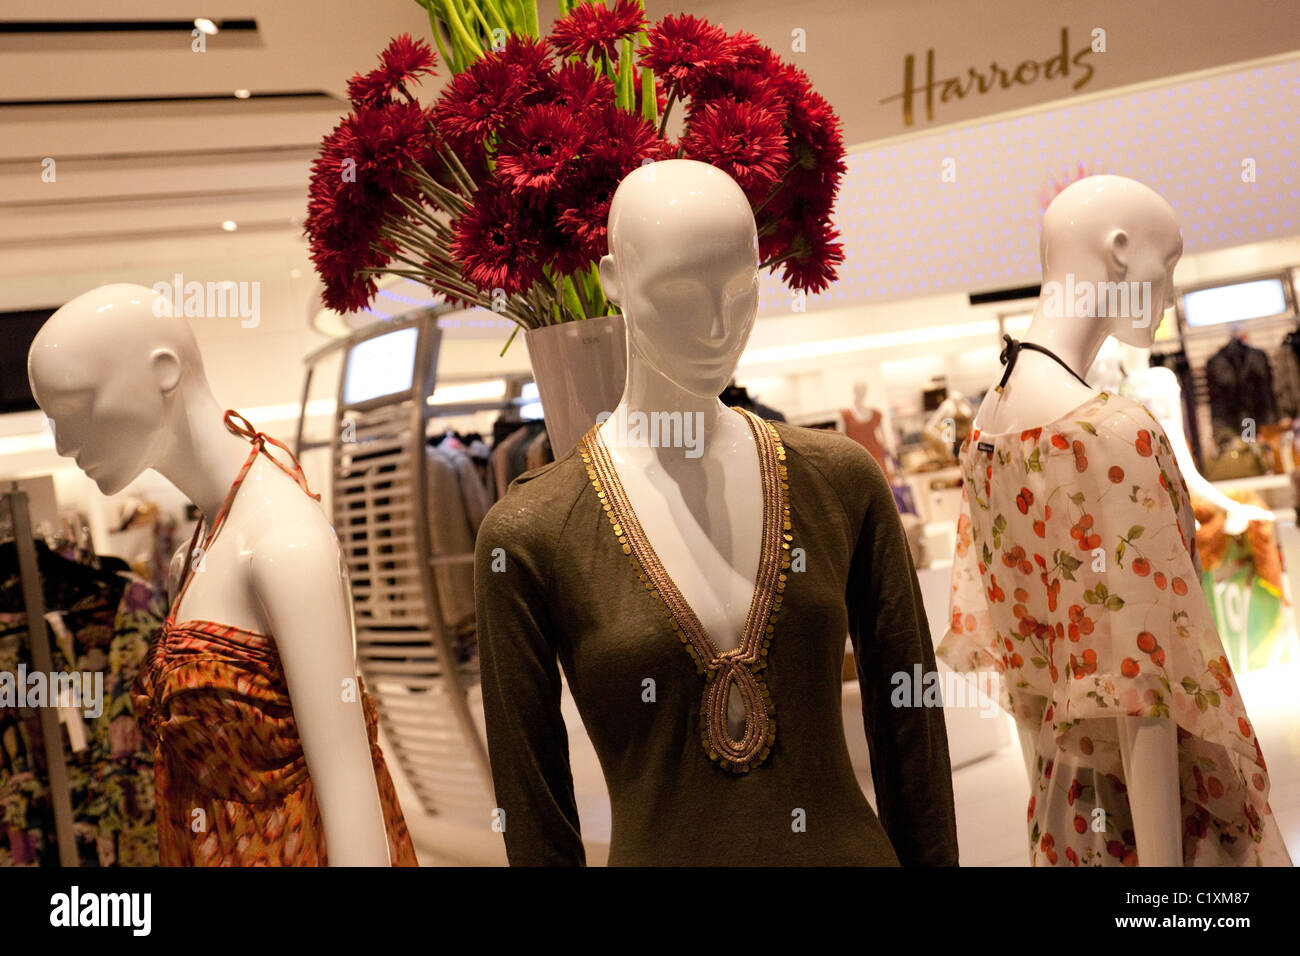 The harrods store at terminal 5, Heathrow airport, London UK - Stock Image